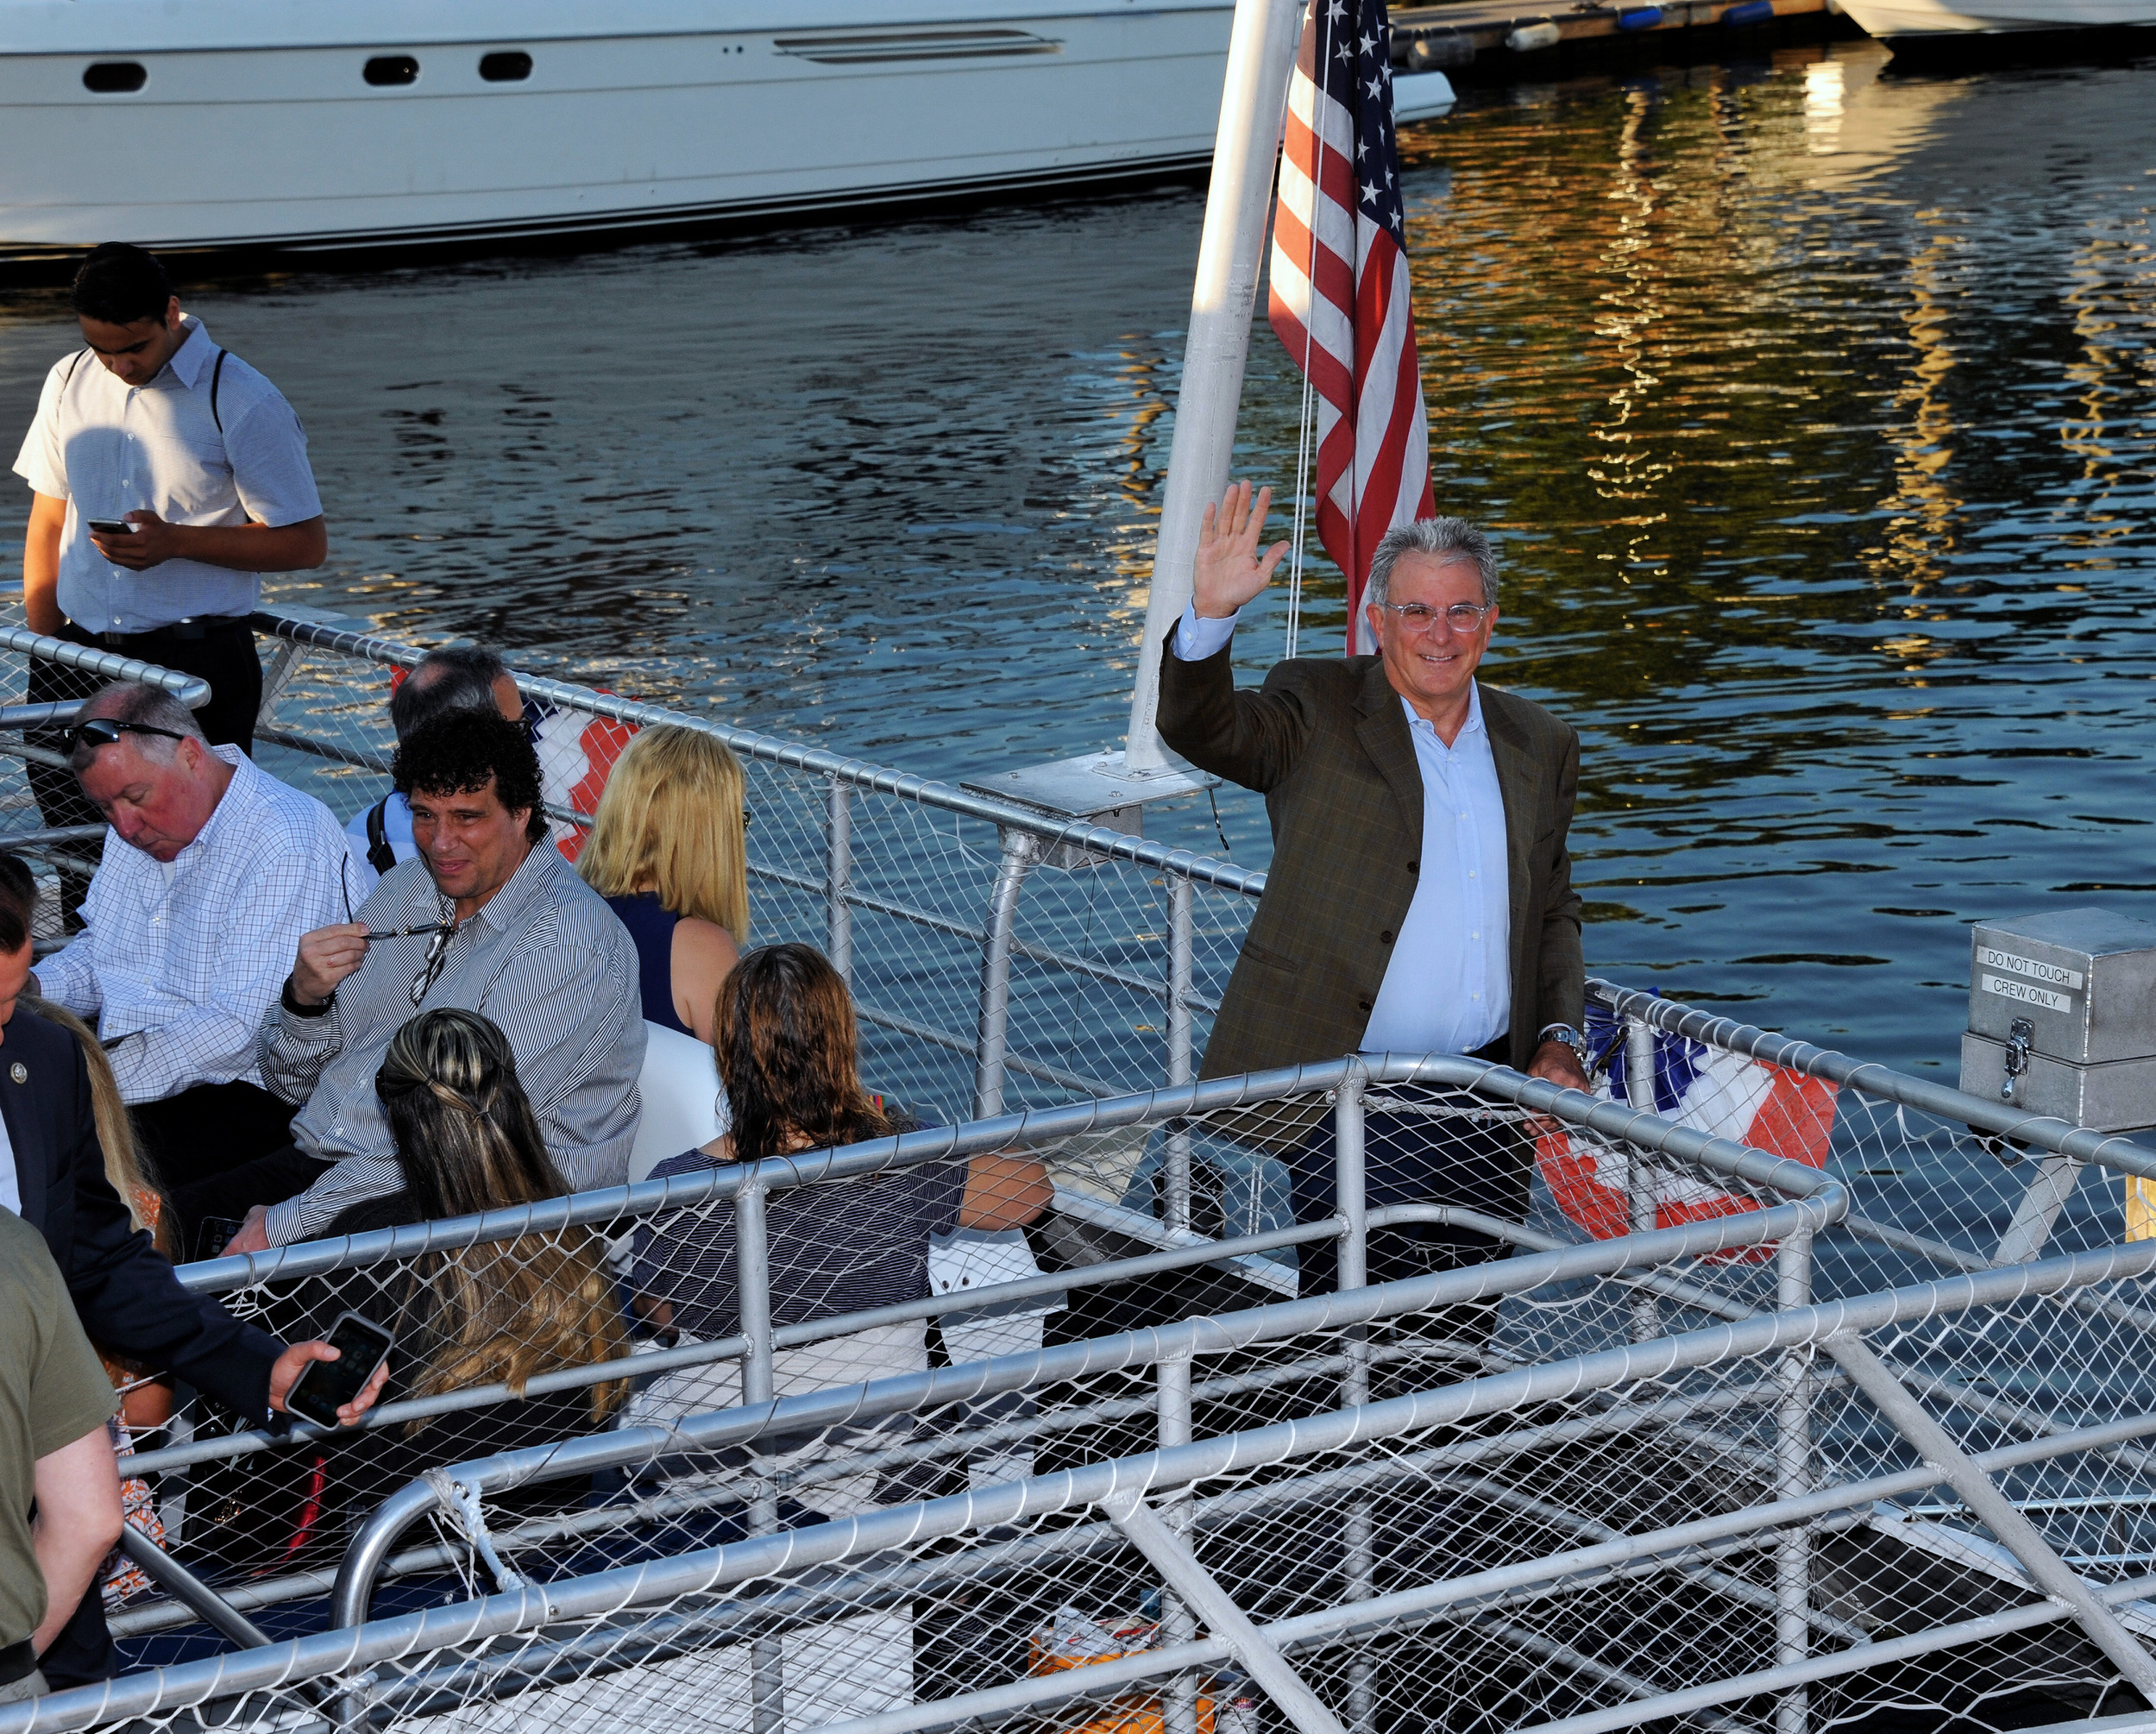 Peter Wagner, Financial Advisor of Oppenheimer waves as the second ferry departs Glen Cove.